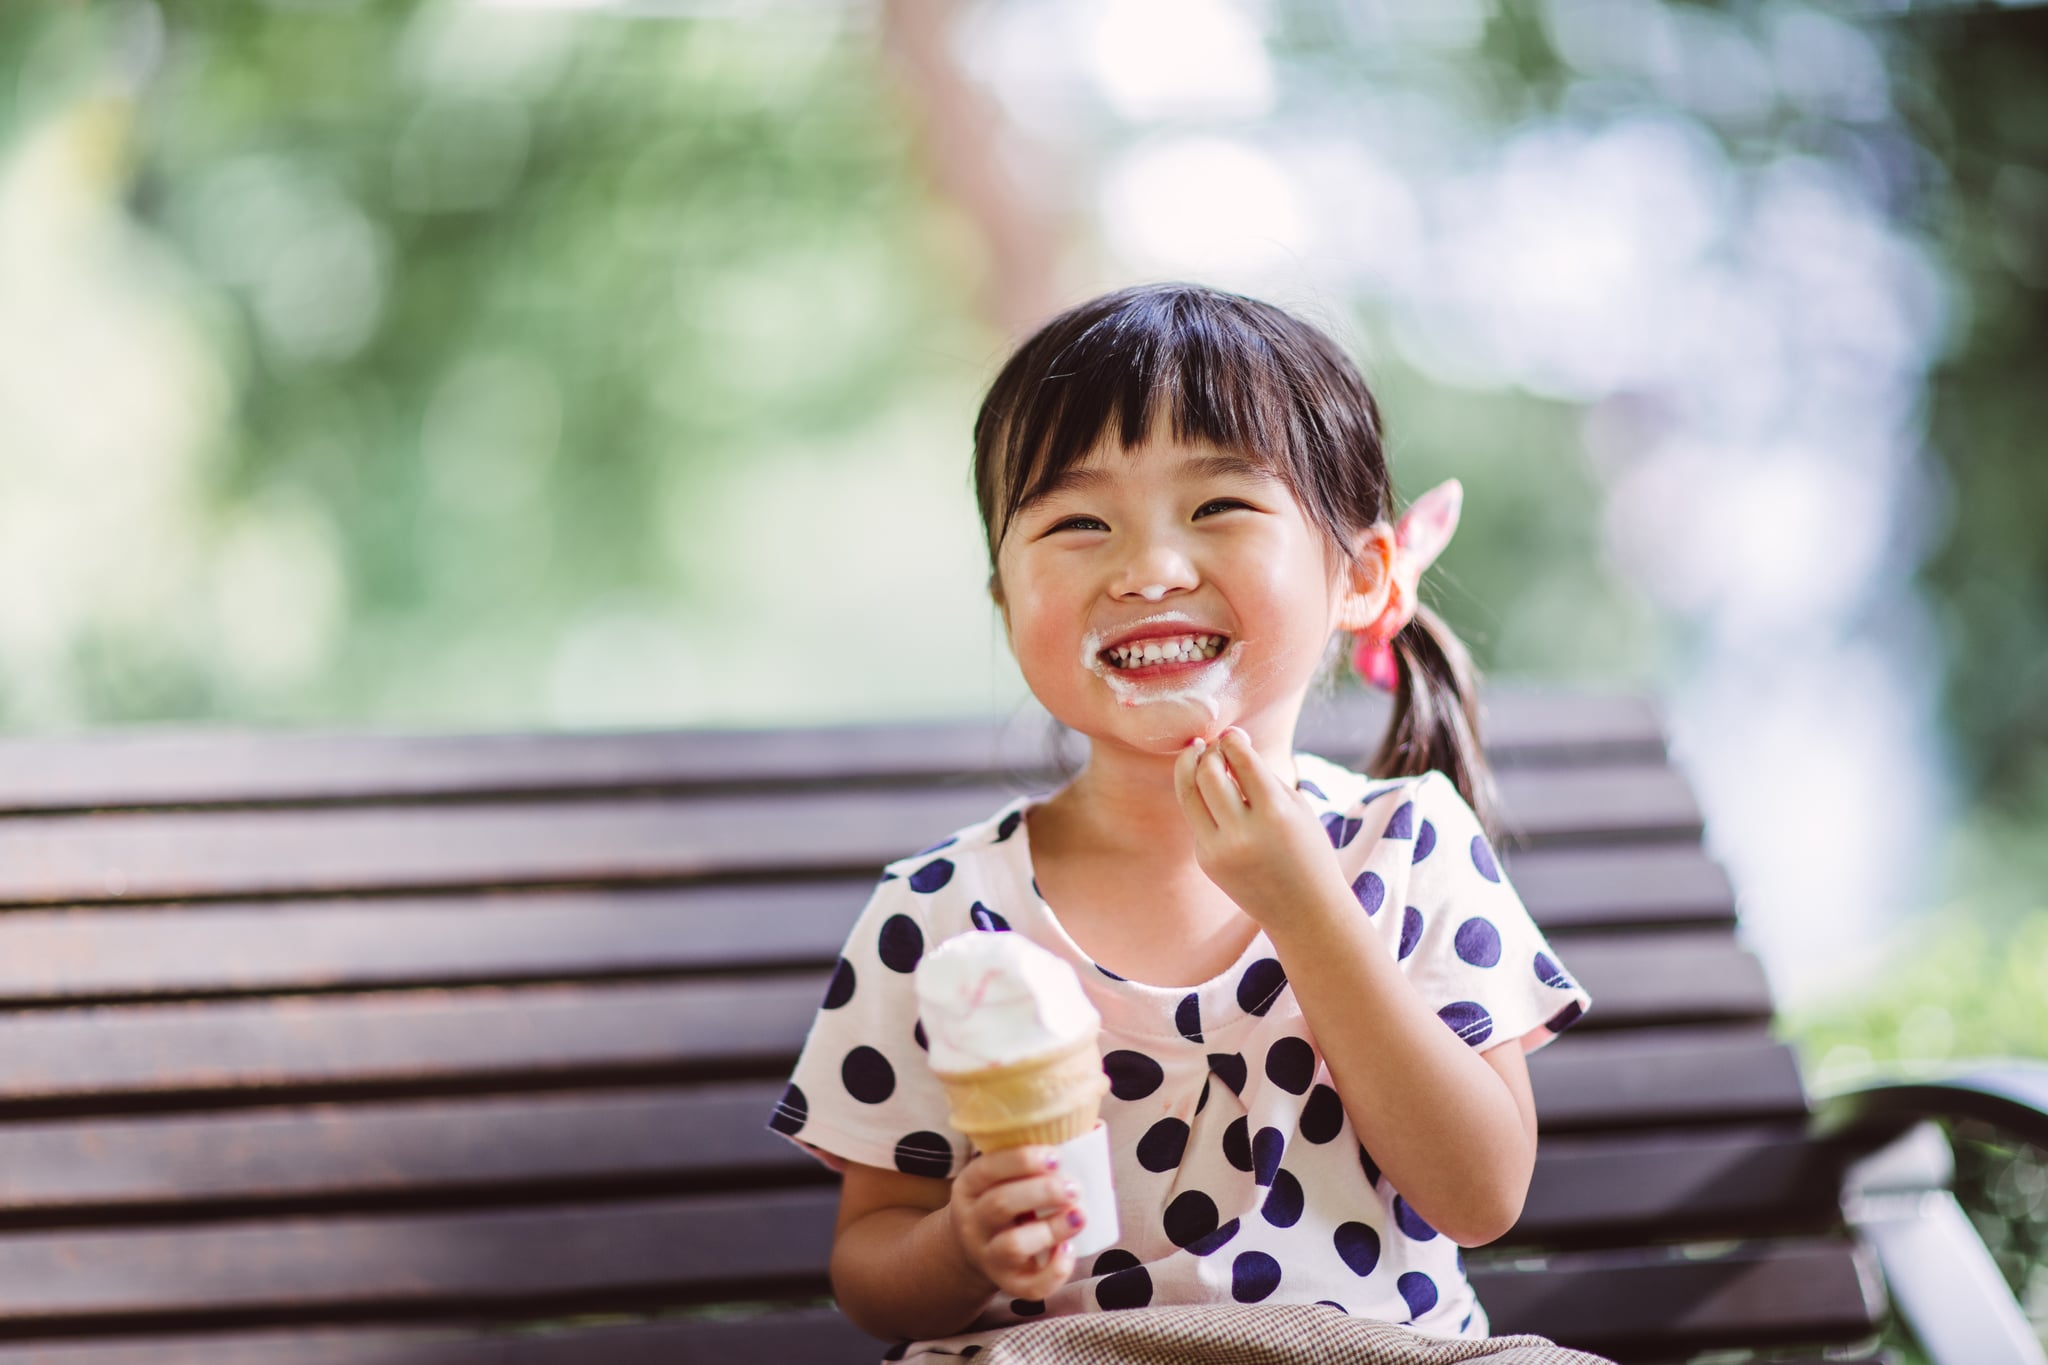 Lovely little girl sitting on the bench having ice-cream cone  in the park joyfully.